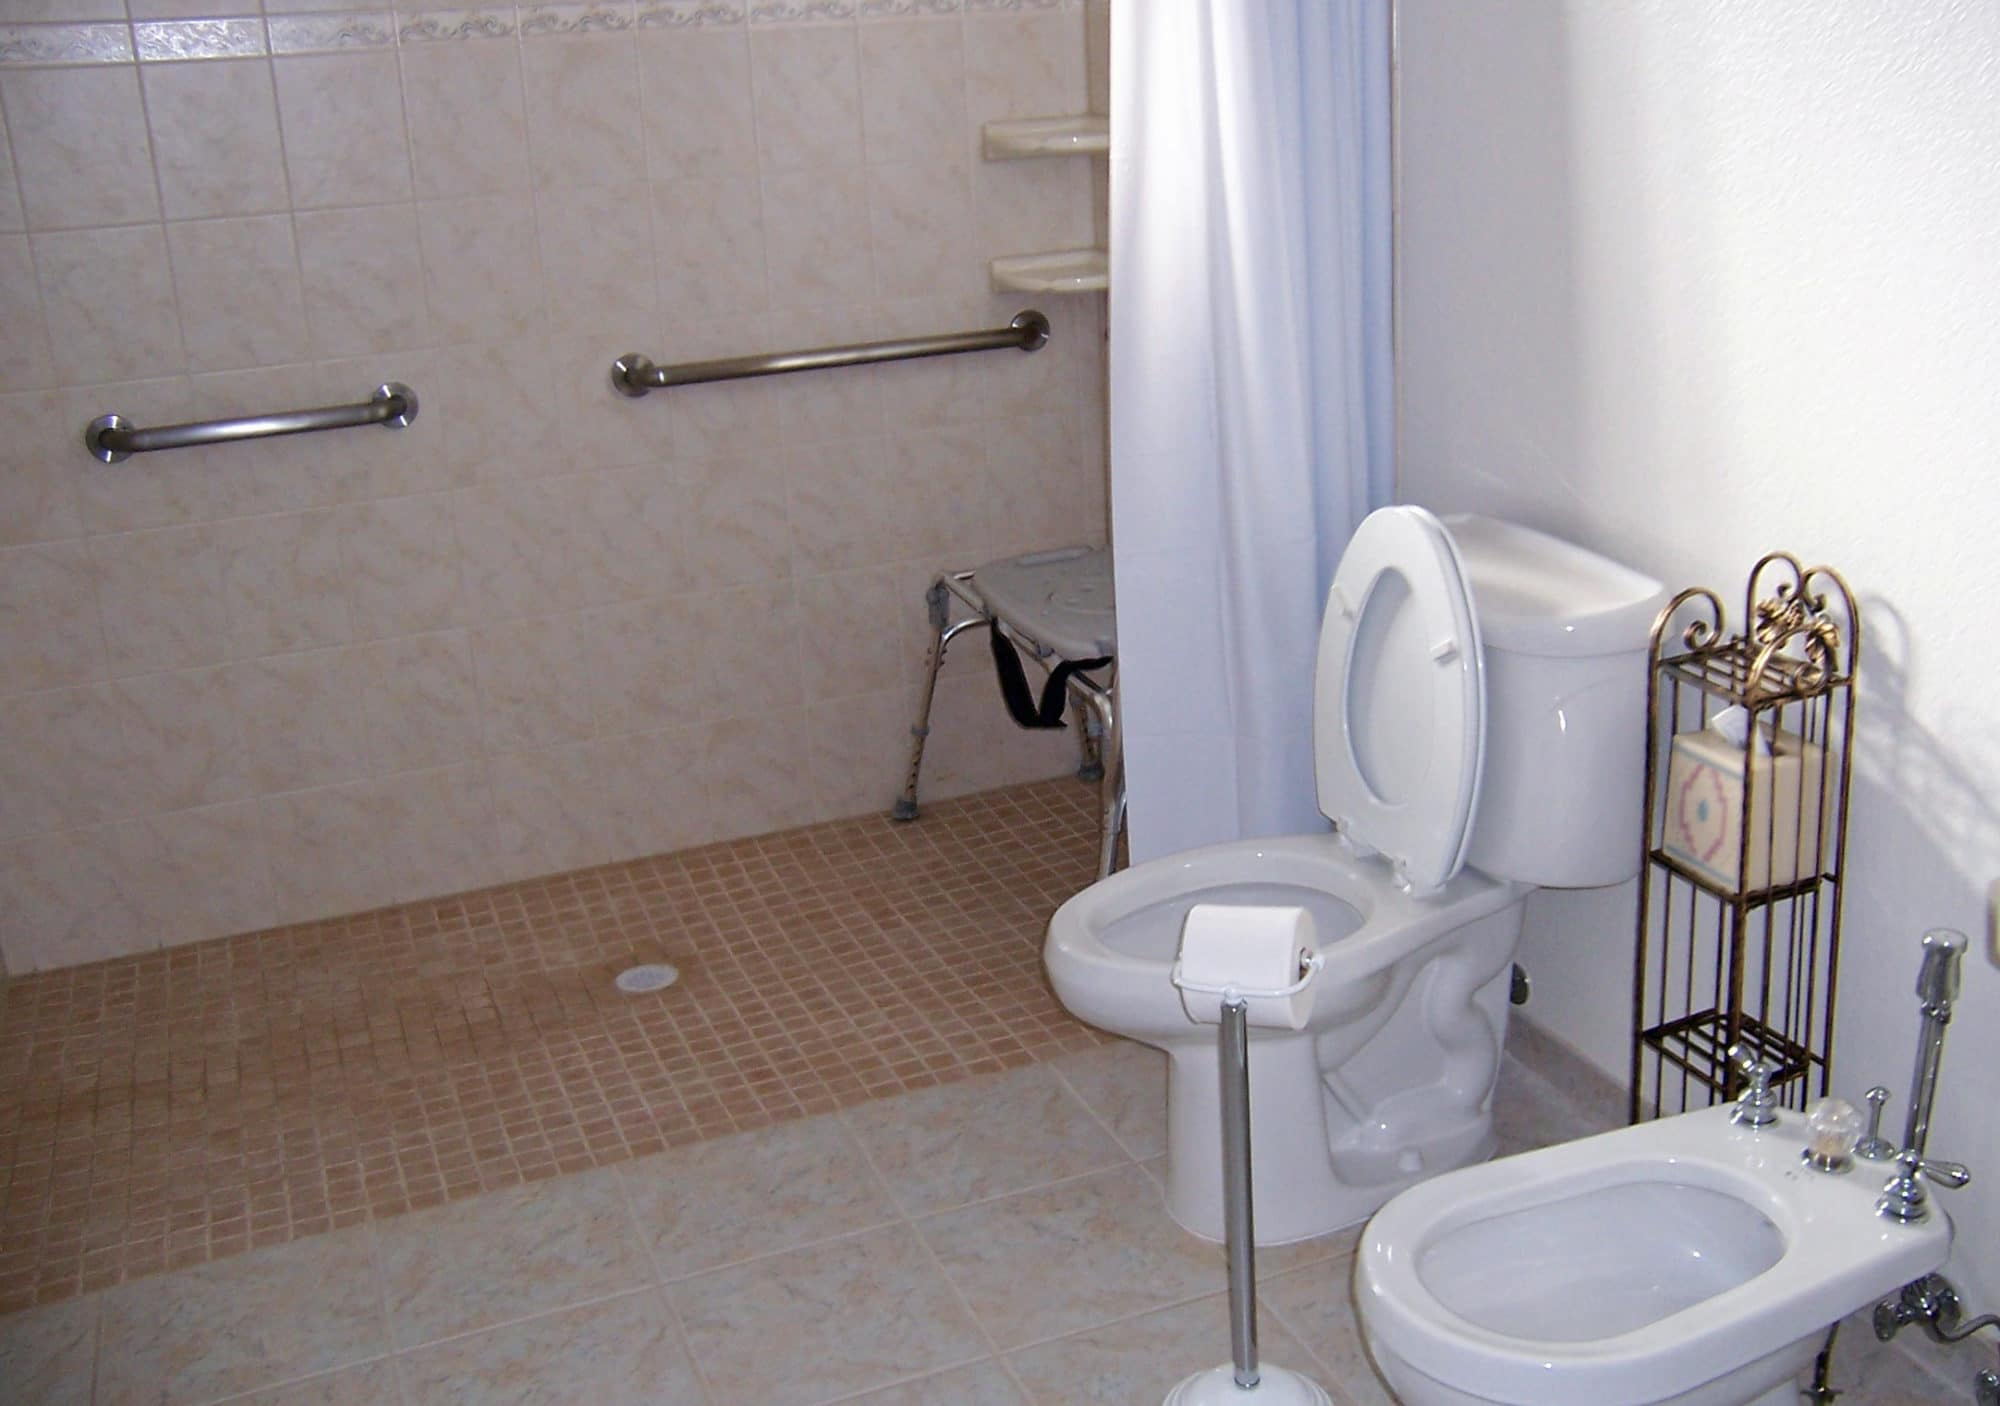 Sierra Remodeling designs and builds ADA compliant bathrooms with roll-in shower, grab bars, ADA compliant commode, bidet and sink